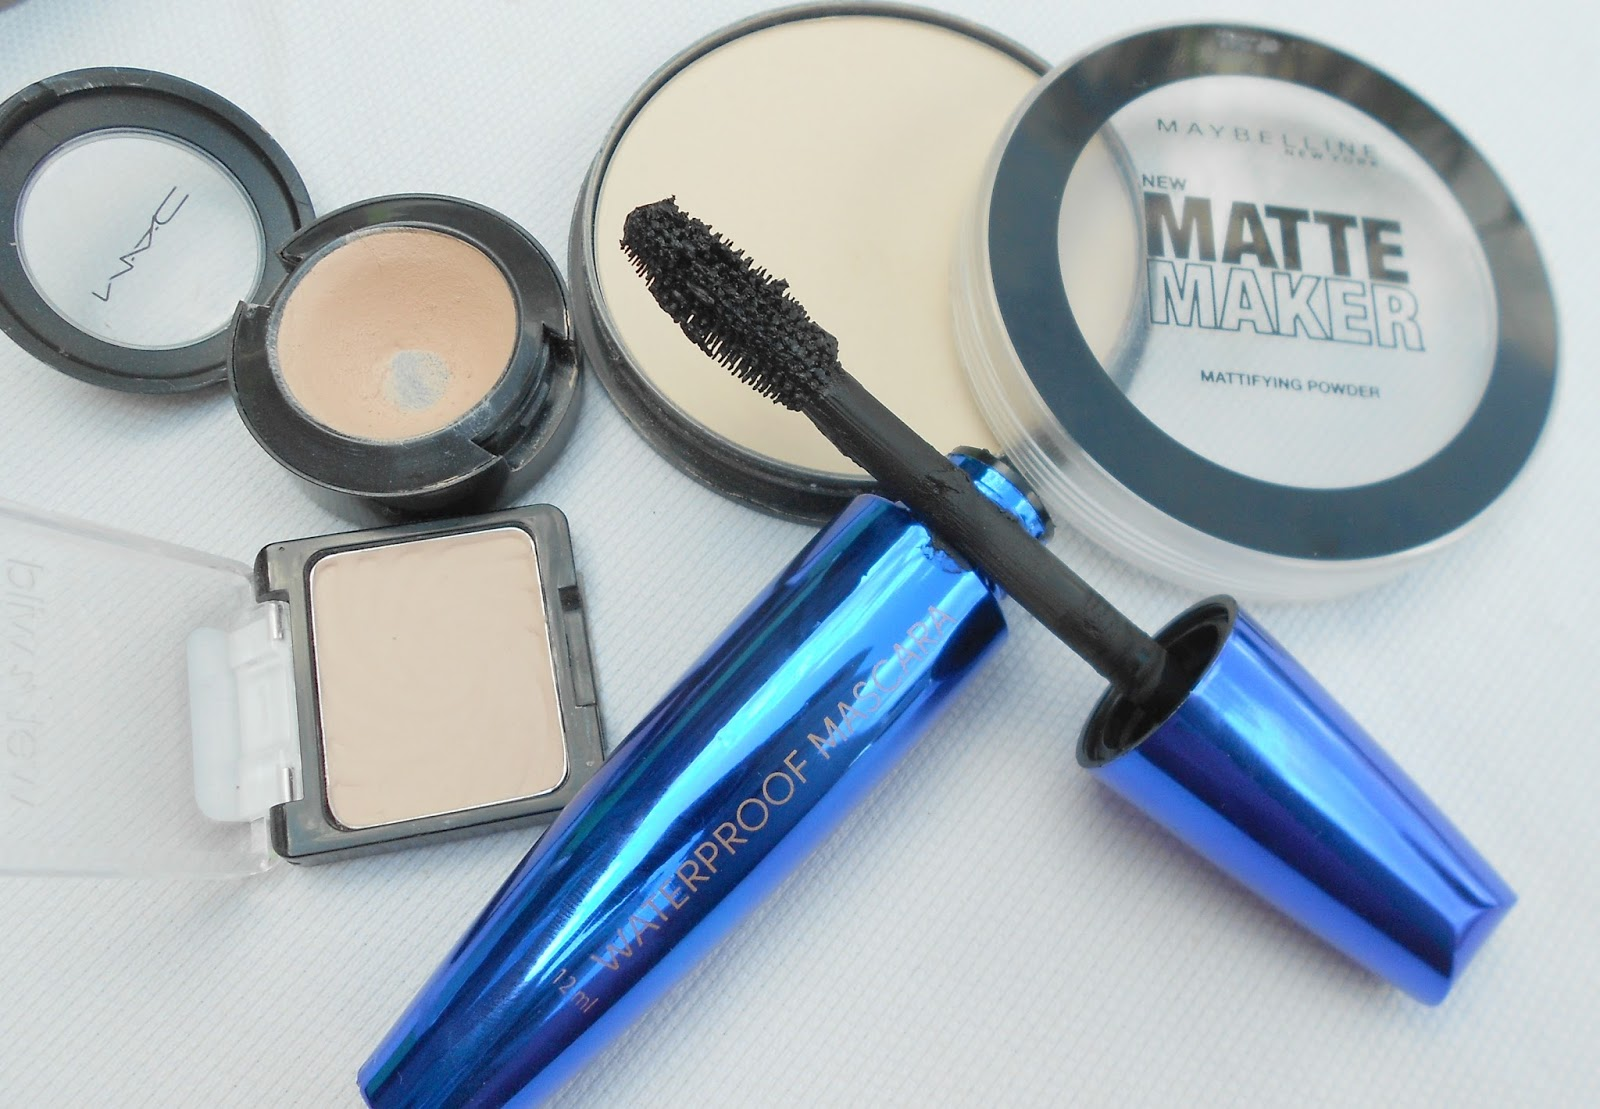 mac giveaway concealer mascara powder eyeshadow wet n wild maybelline primark